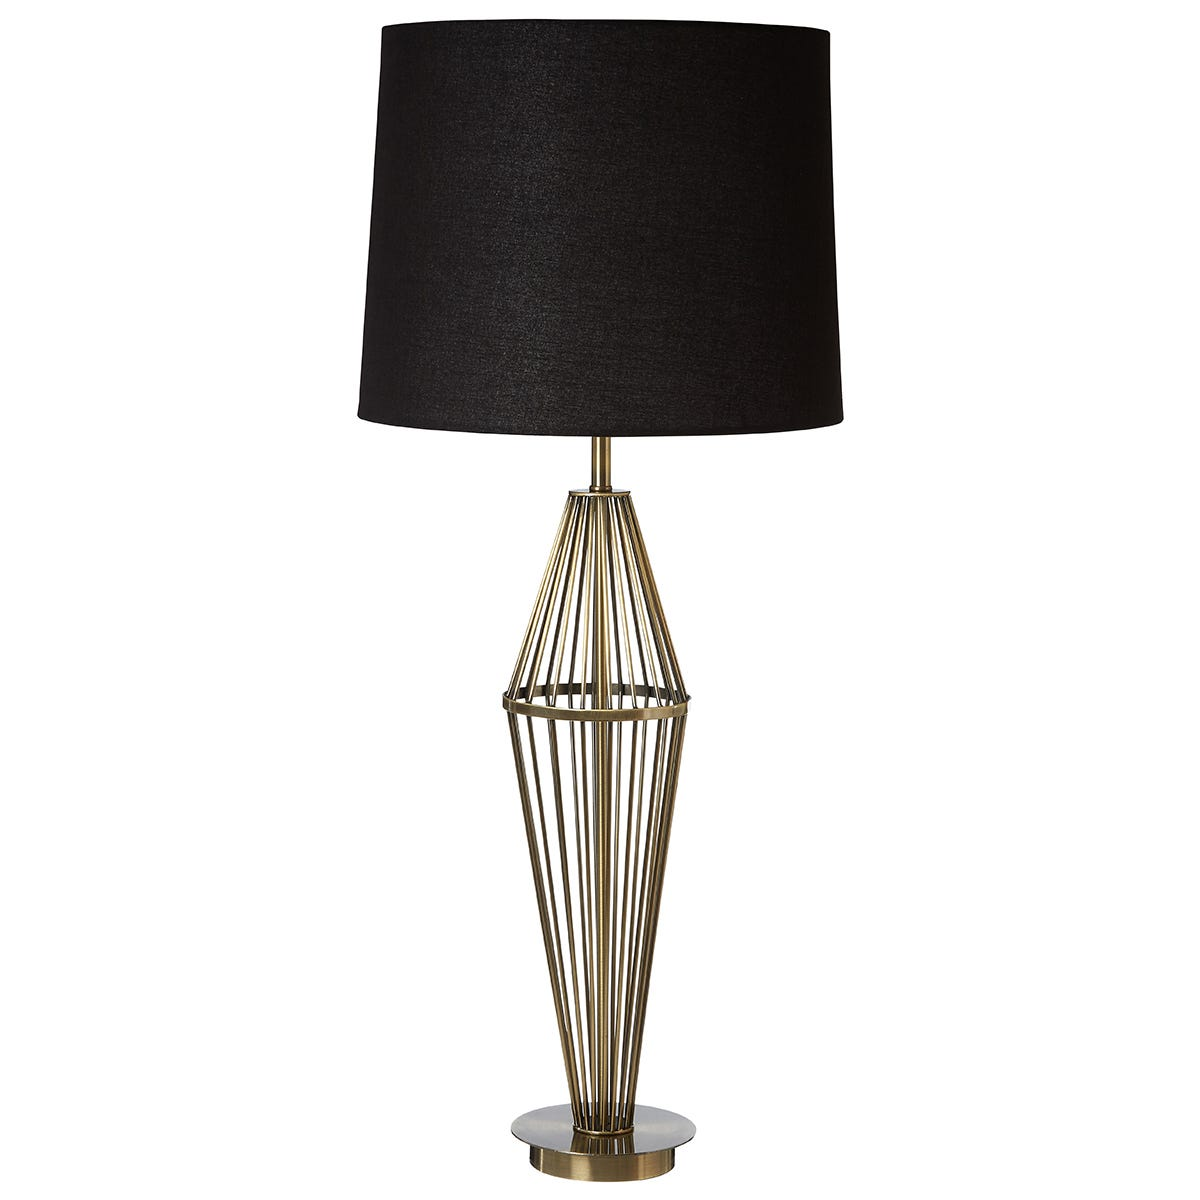 Premier Housewares Reginald Table Lamp in Antique Brass Finish with Black Fabric Shade